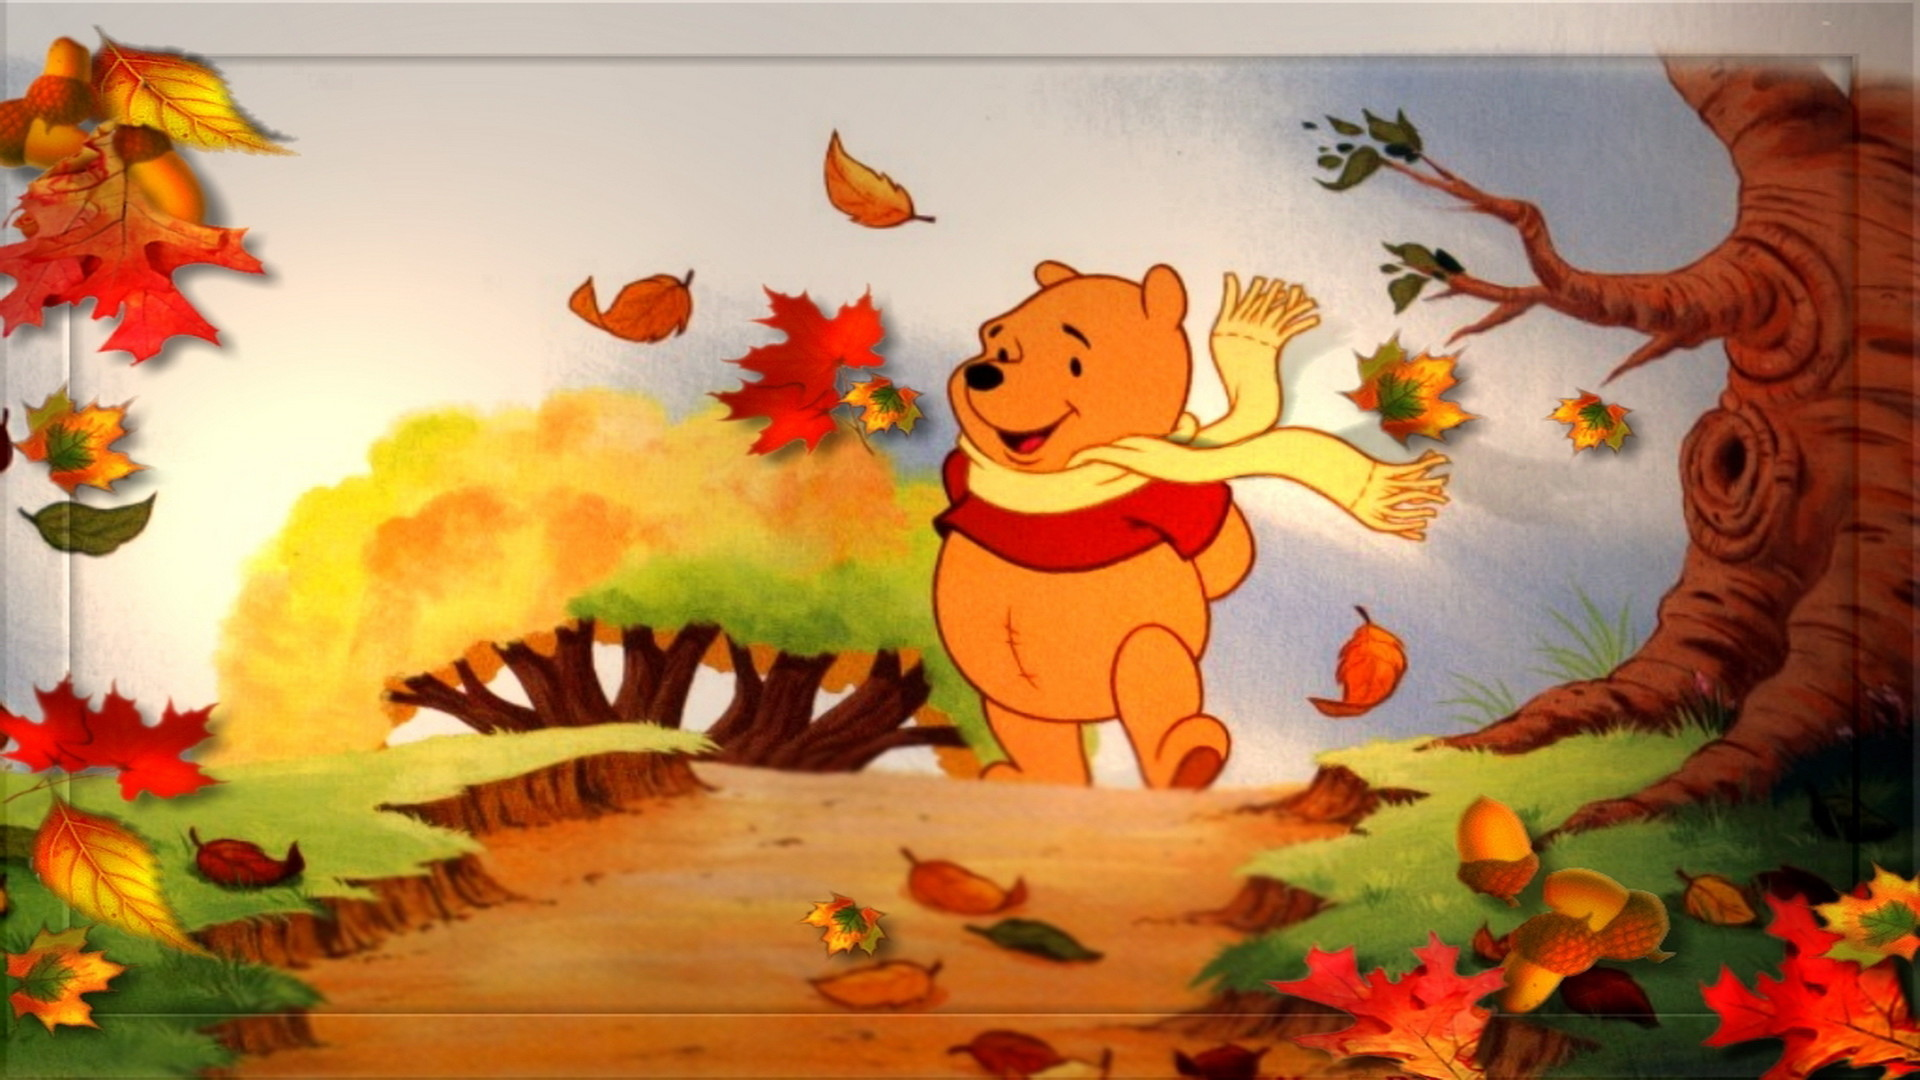 Disney Thanksgiving Wallpaper for